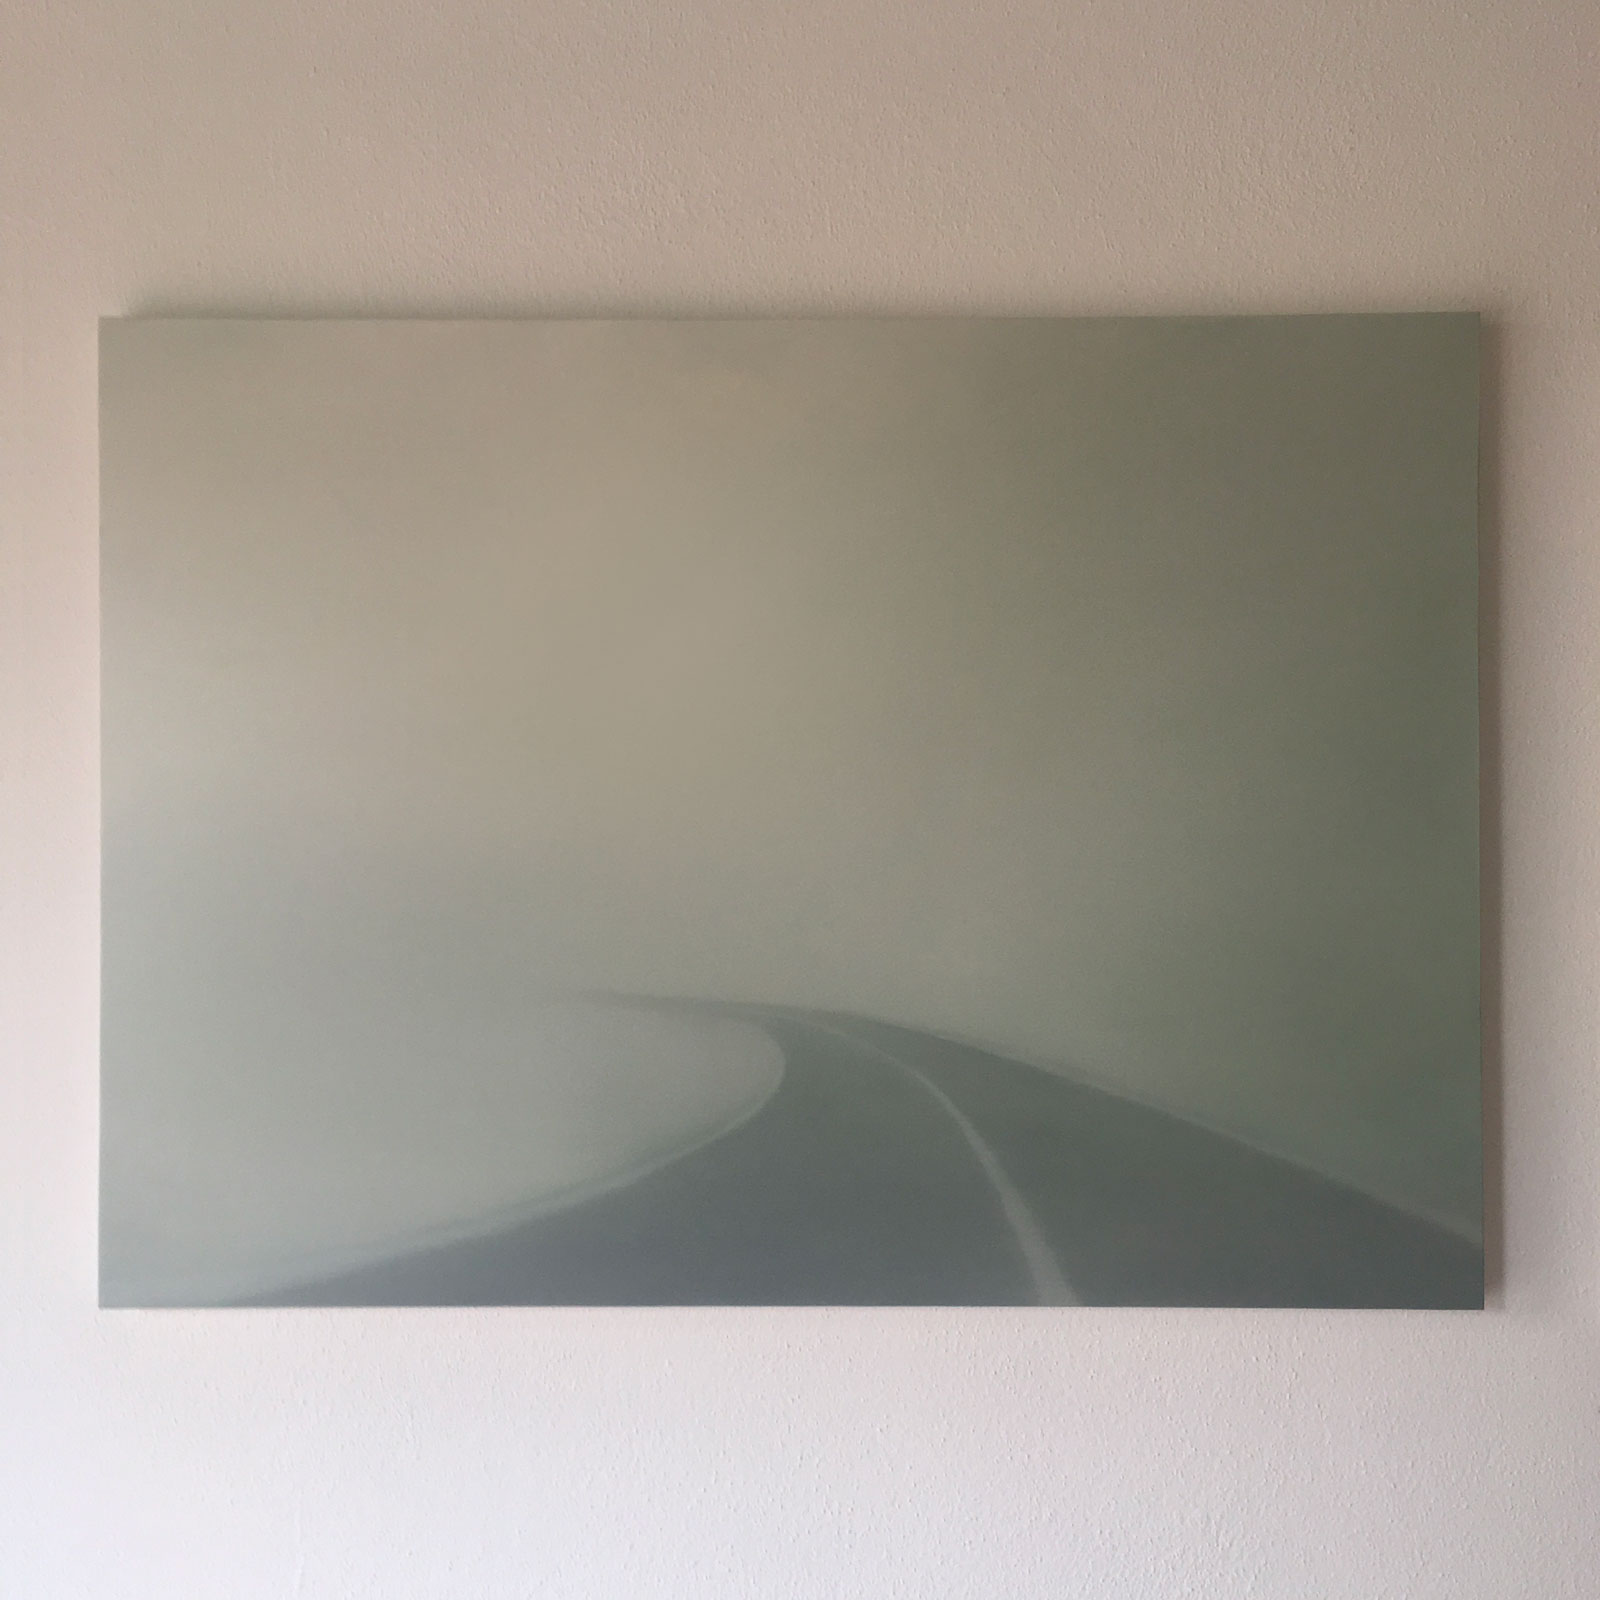 T#128-2018, oil on canvas, 80x110cm